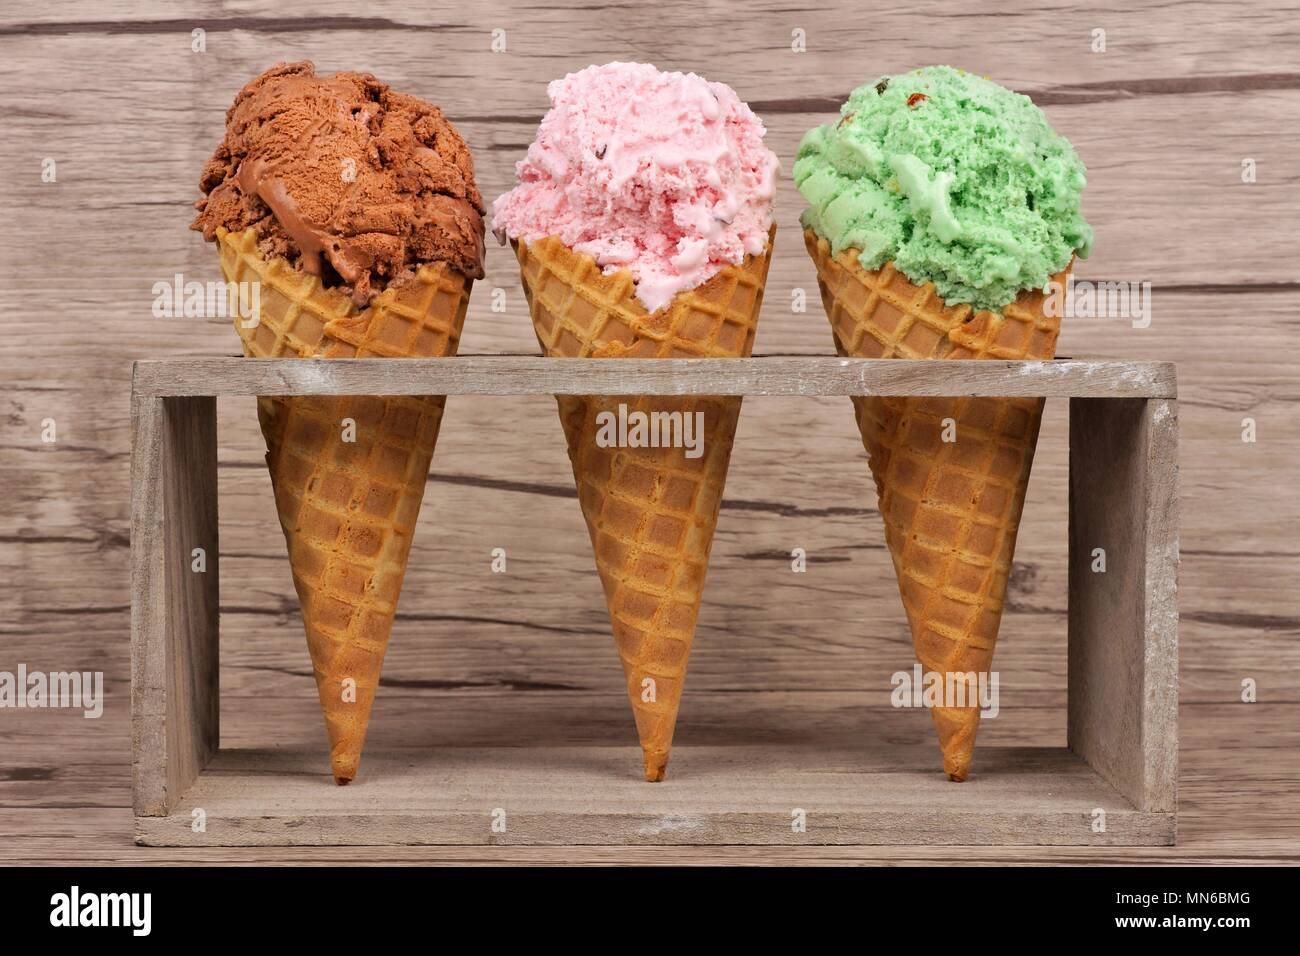 Chocolate, cherry and pistachio ice cream in waffle cones in rustic holder over a wood background - Stock Image